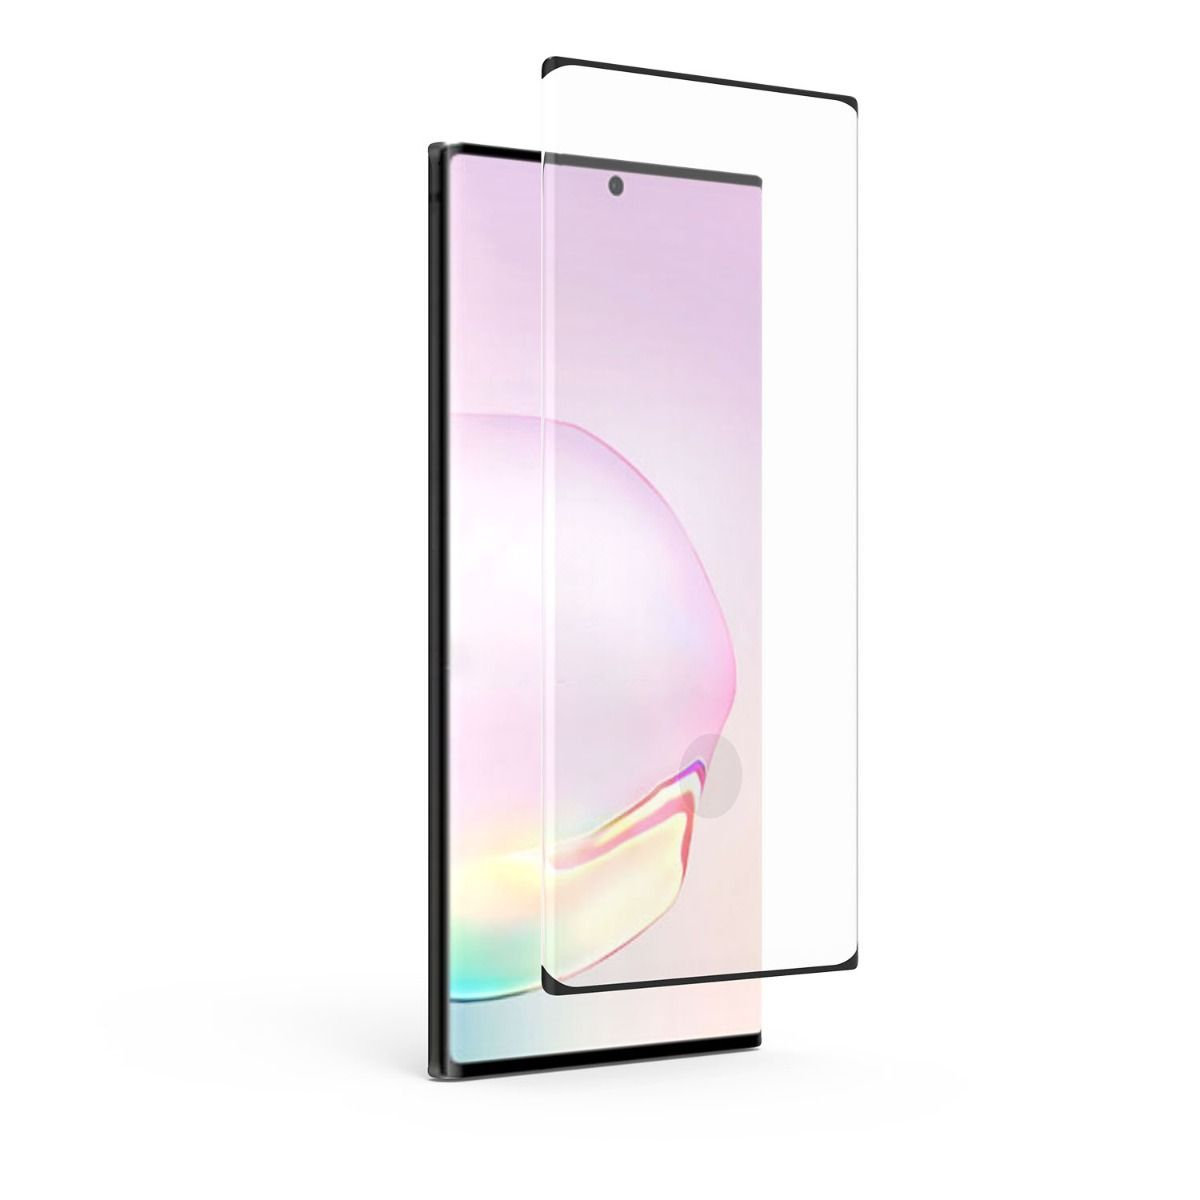 Samsung Galaxy Note20 Ultra 5G Curved Glass, Fingerprint Sensor Ready Screen Protector, with Black Borders and Alignment Tray